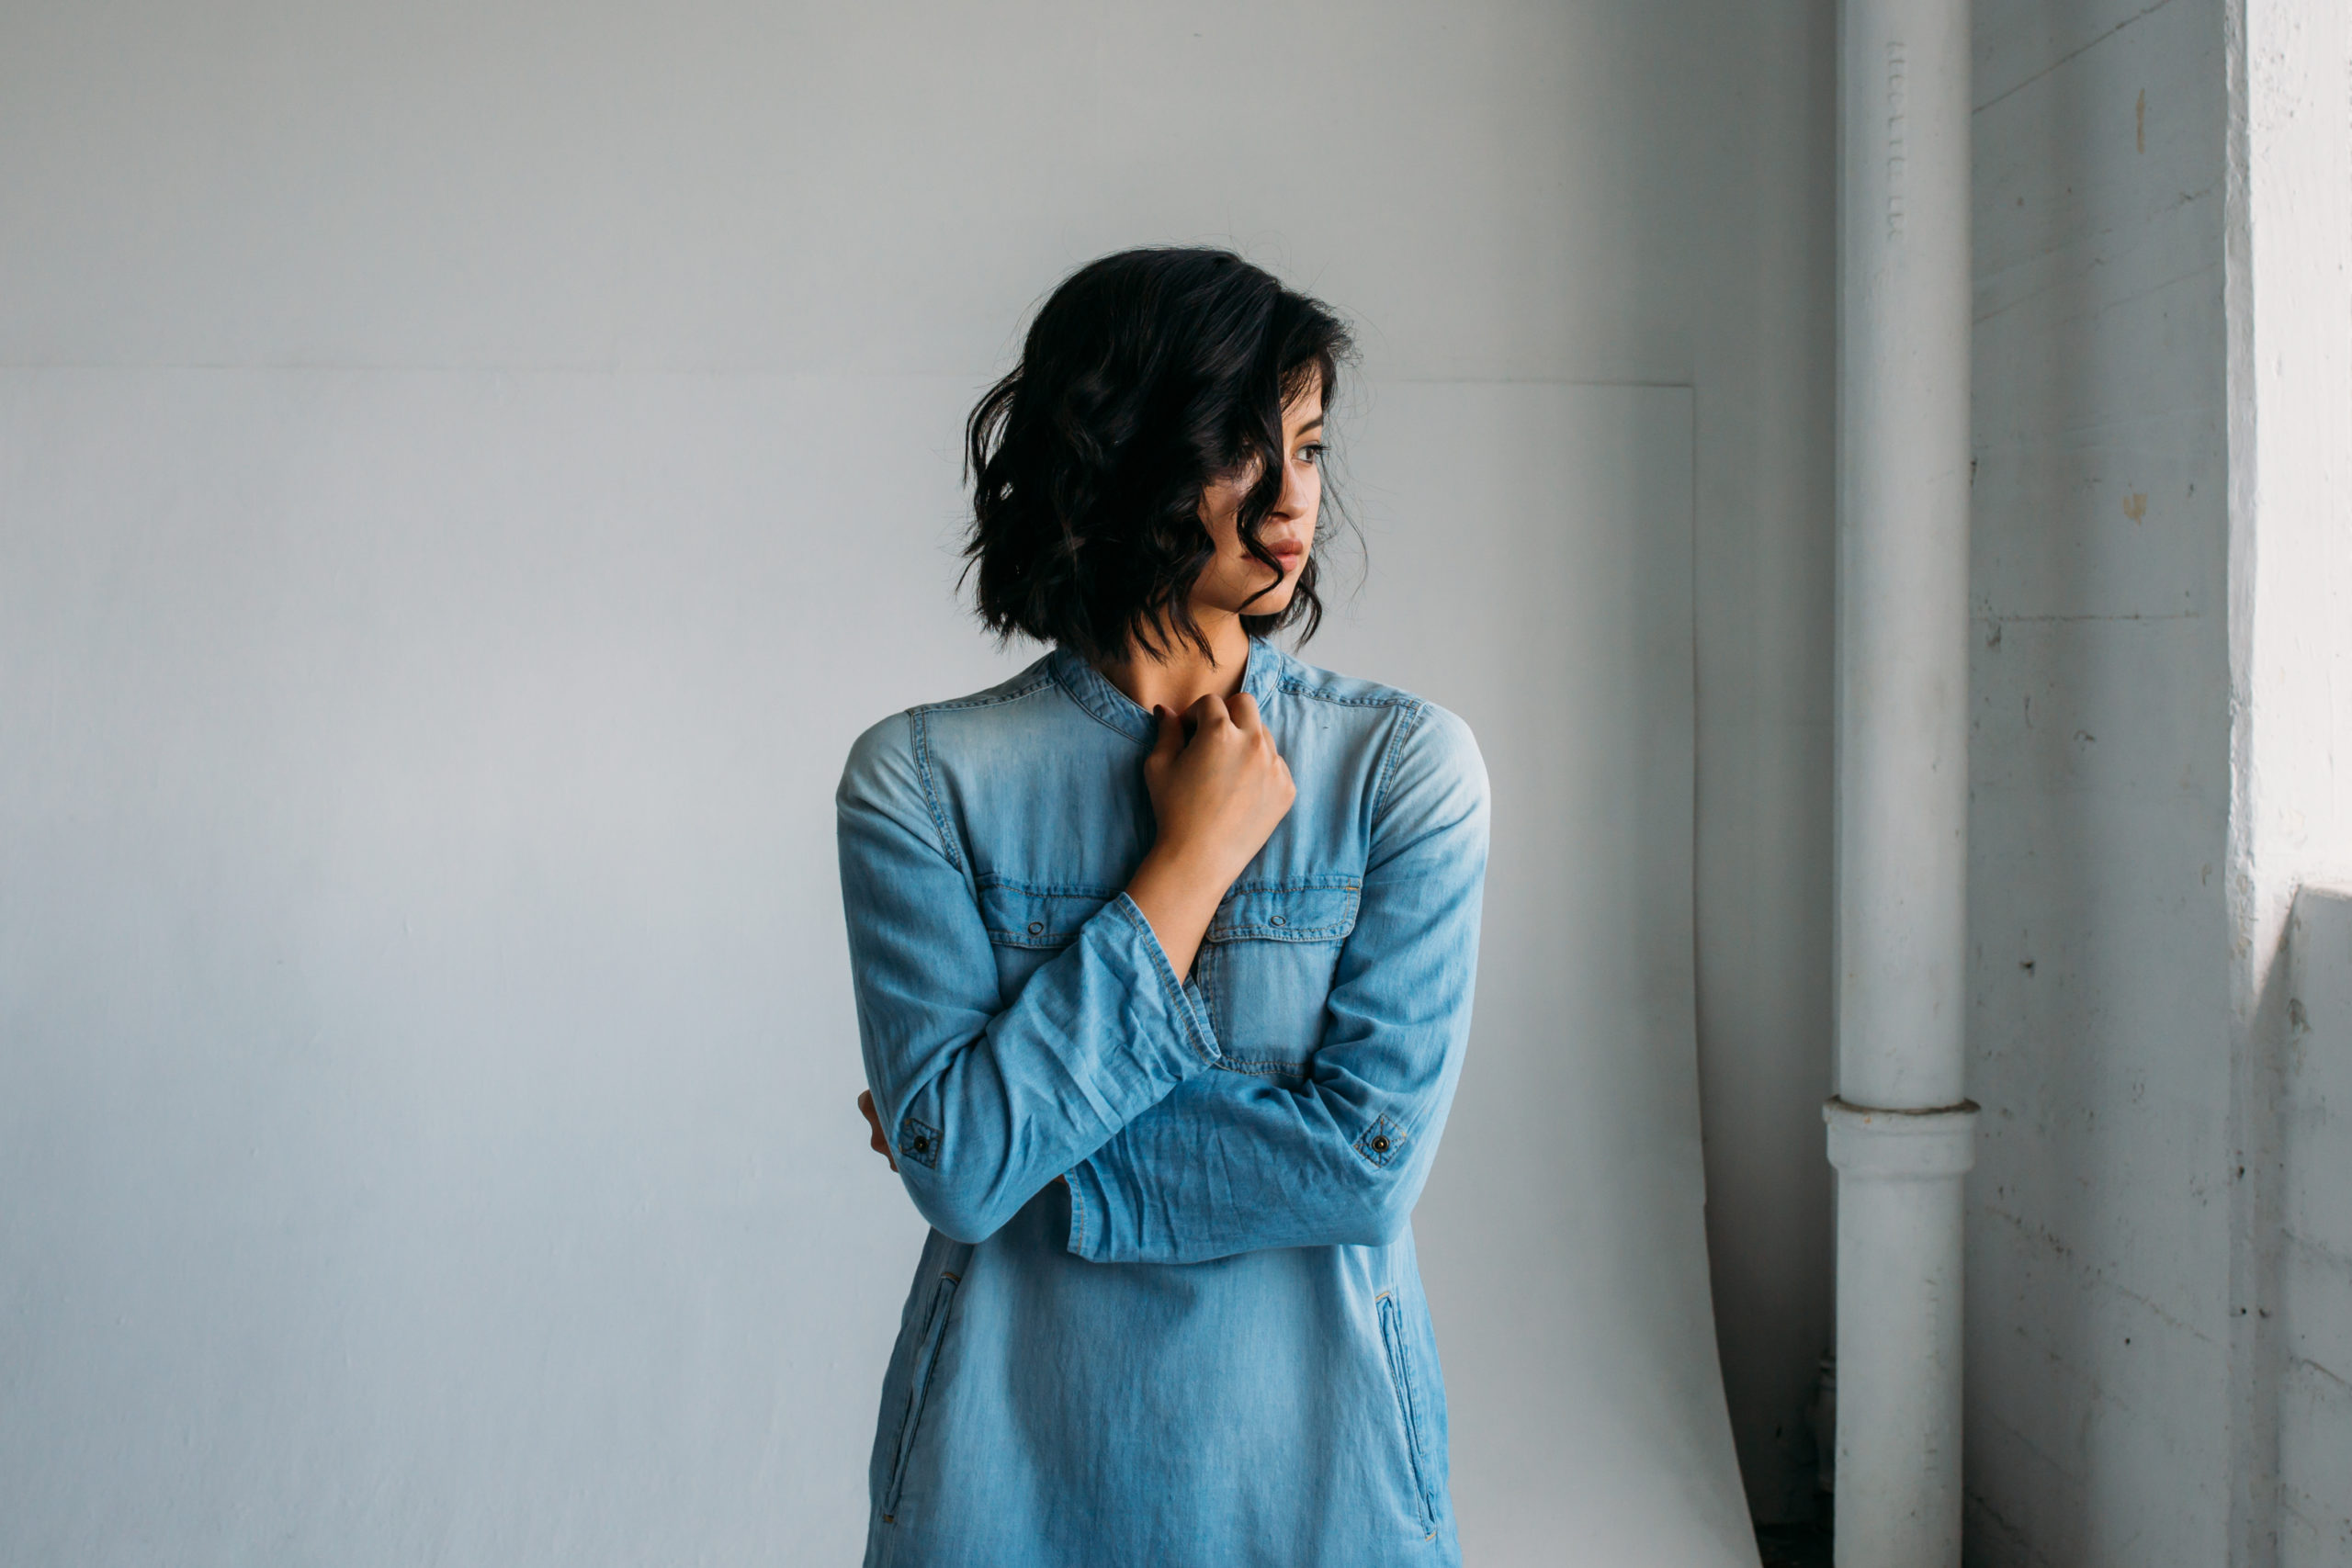 Therapists Share Their Best Tips To Relieve Stress | Evergreen Counseling | Berkeley Therapy | www.evergreencounseling.com